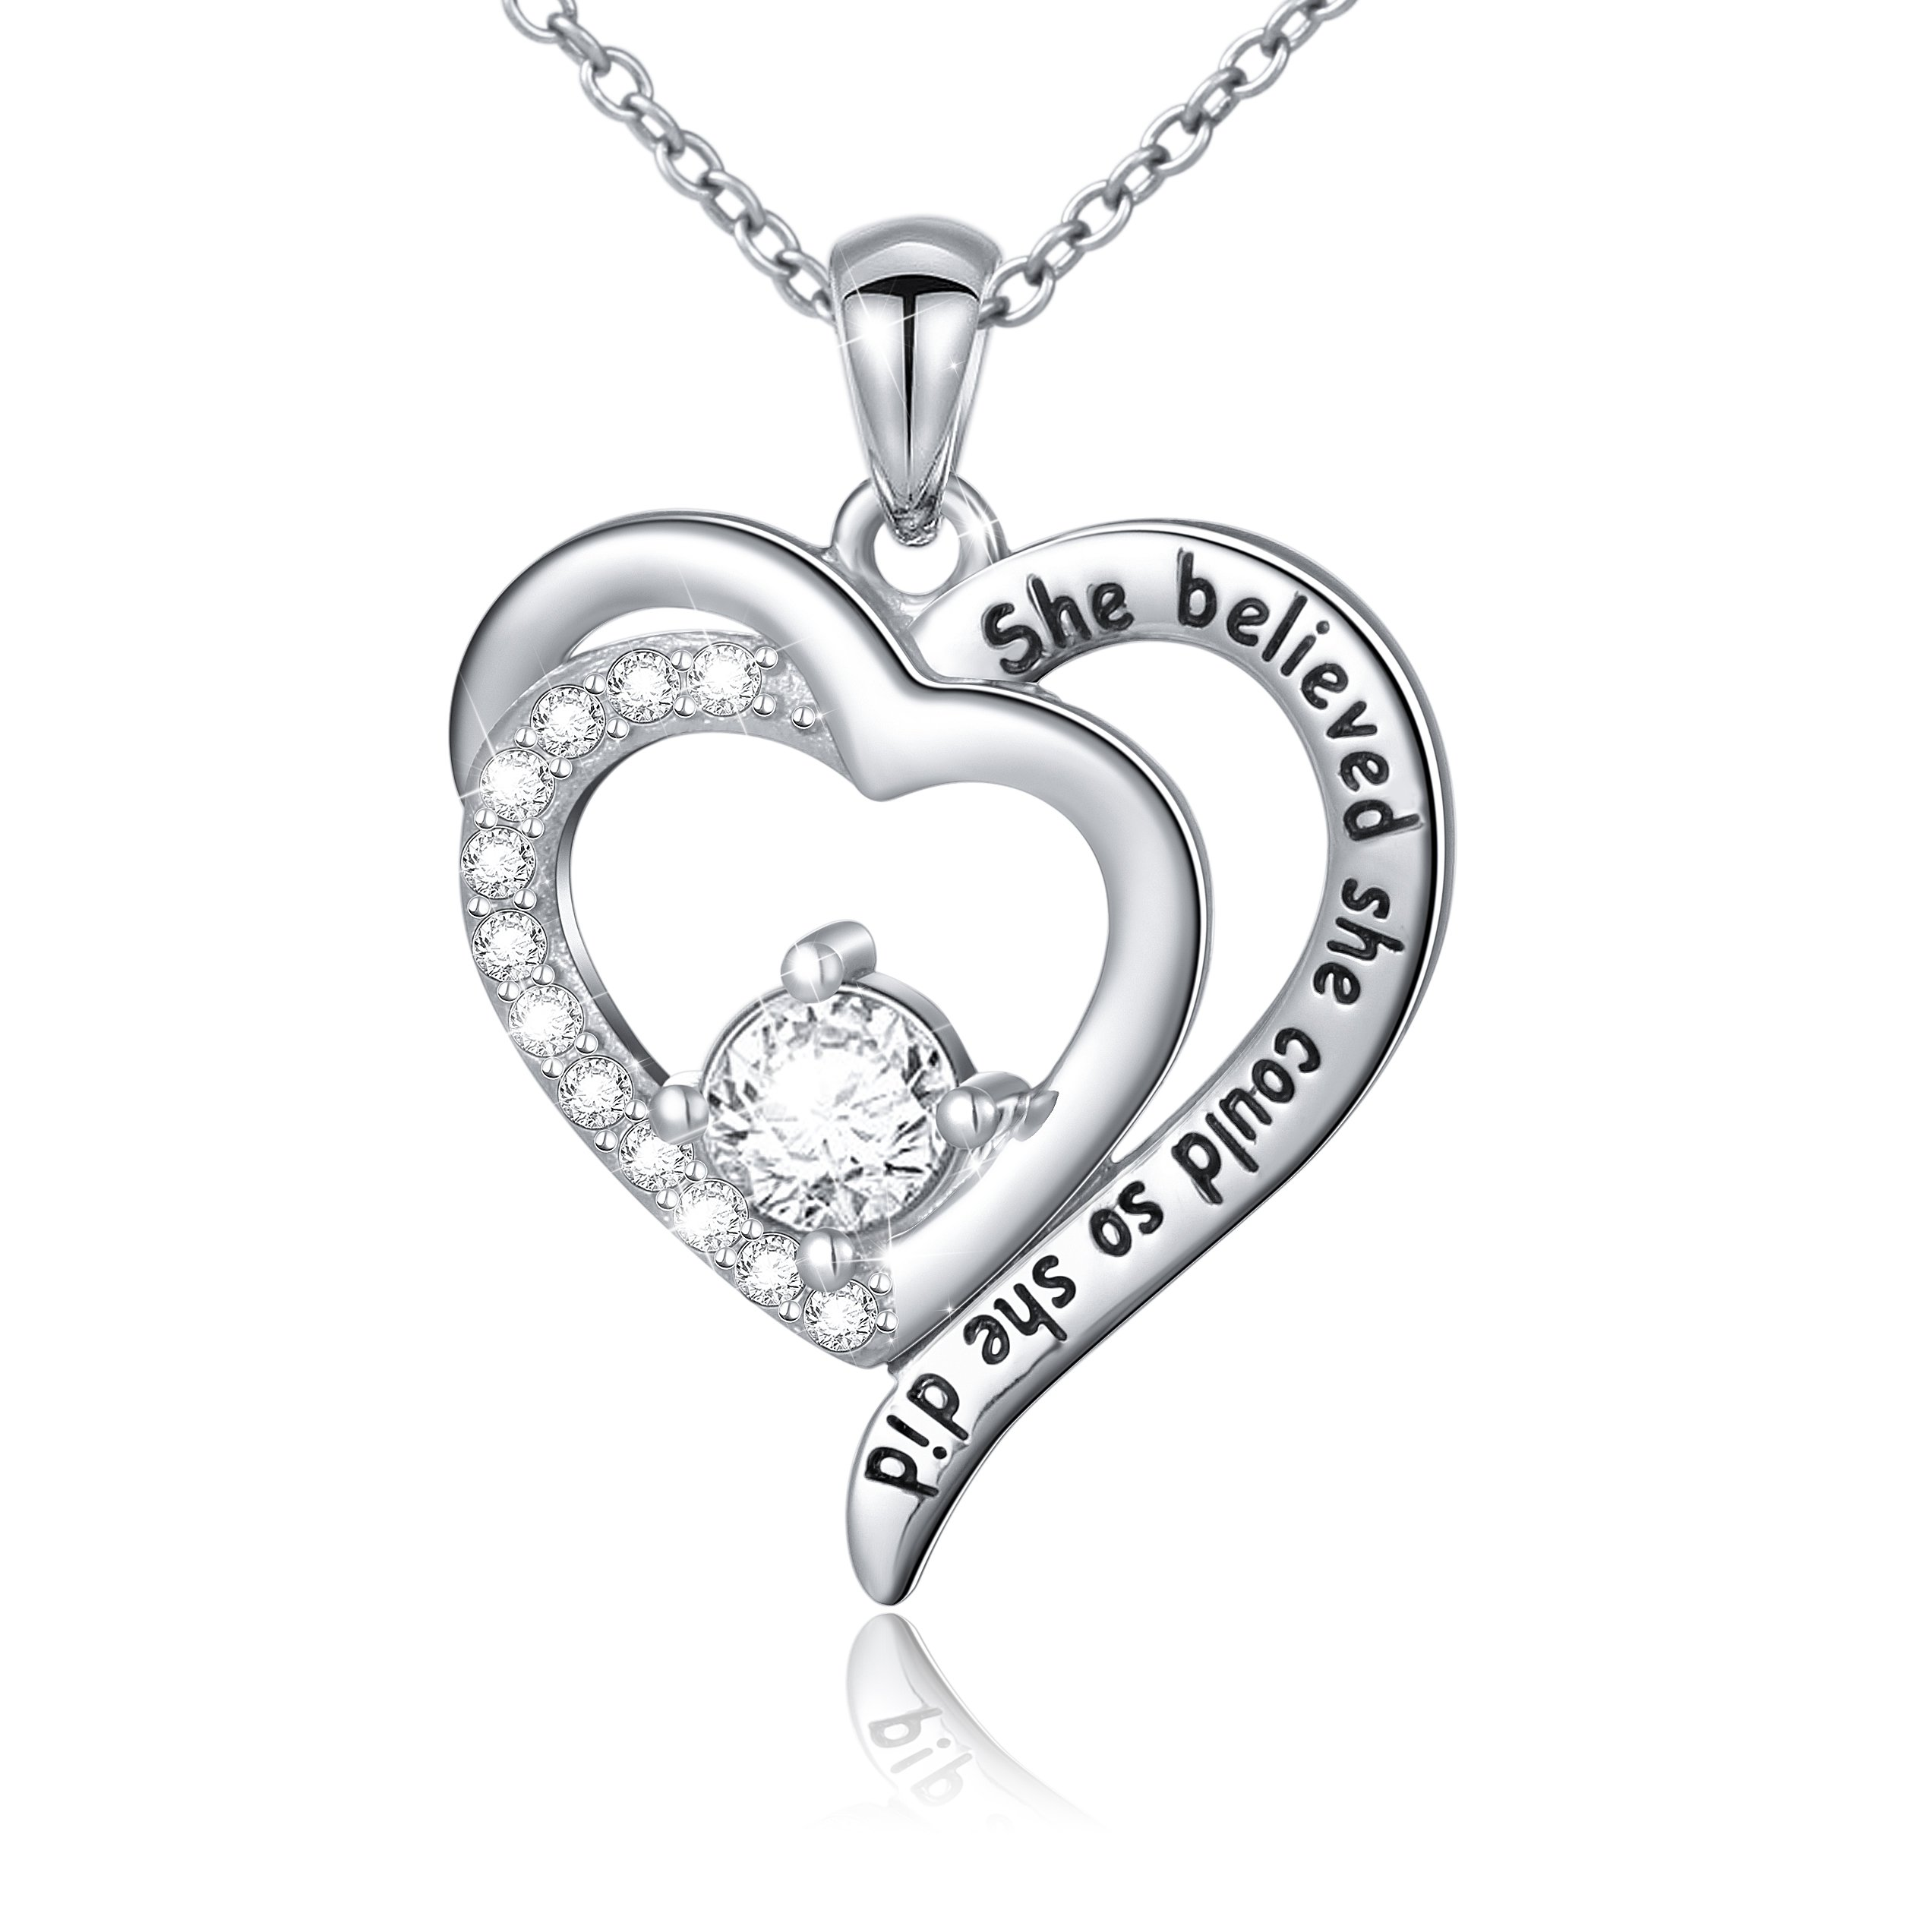 SILVER MOUNTAIN Inspirational Jewelry Sterling Silver She Believed She Could So She Did Love Heart Necklace,18'' (Style 2)